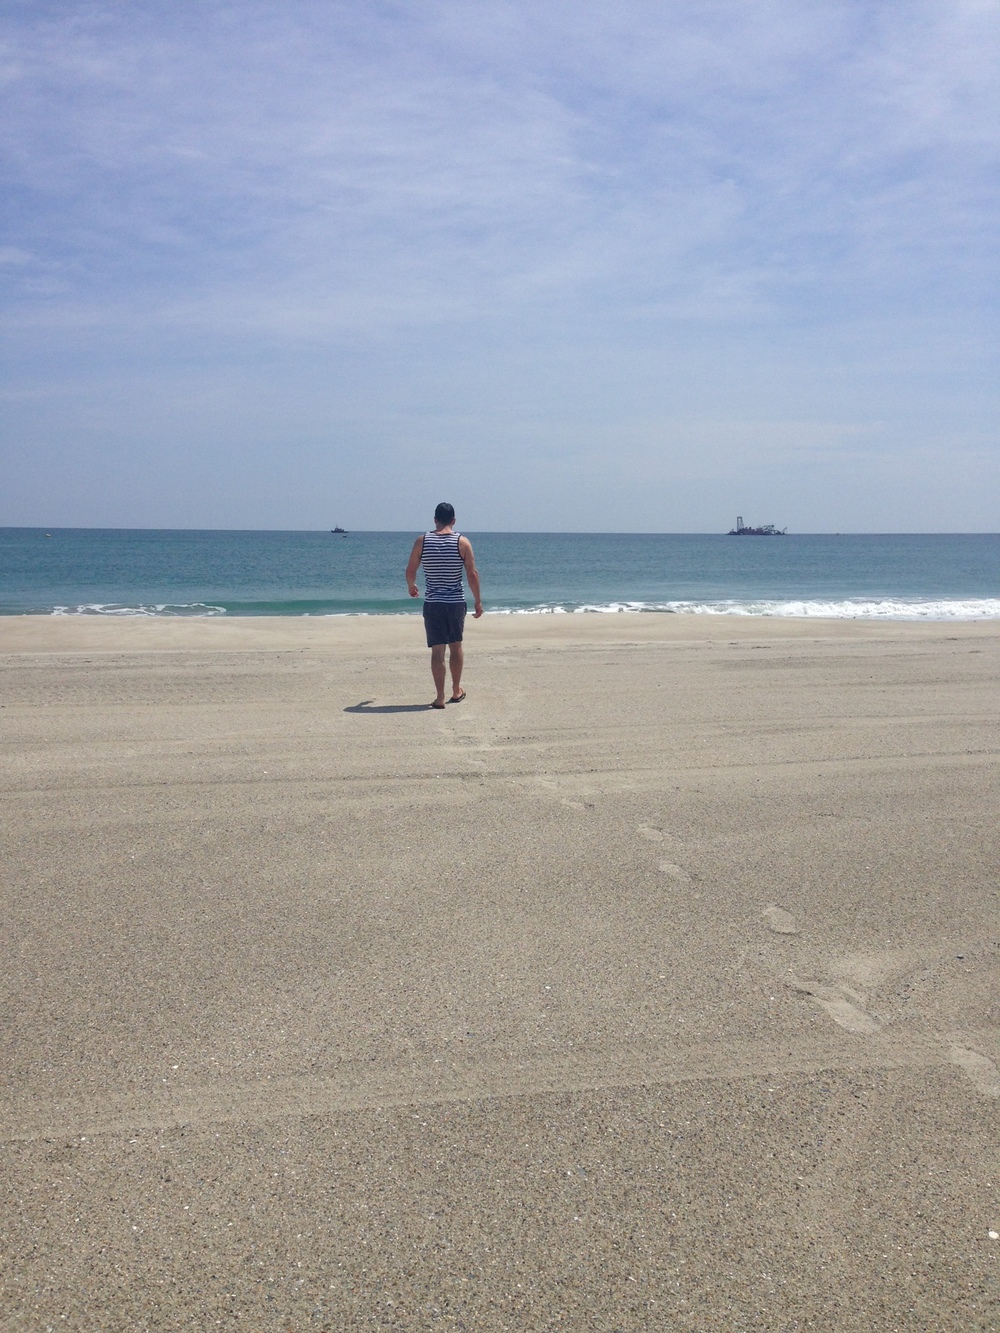 Enjoyed finding secluded, wide open beaches, highly recommended for soul detoxing & refreshment.